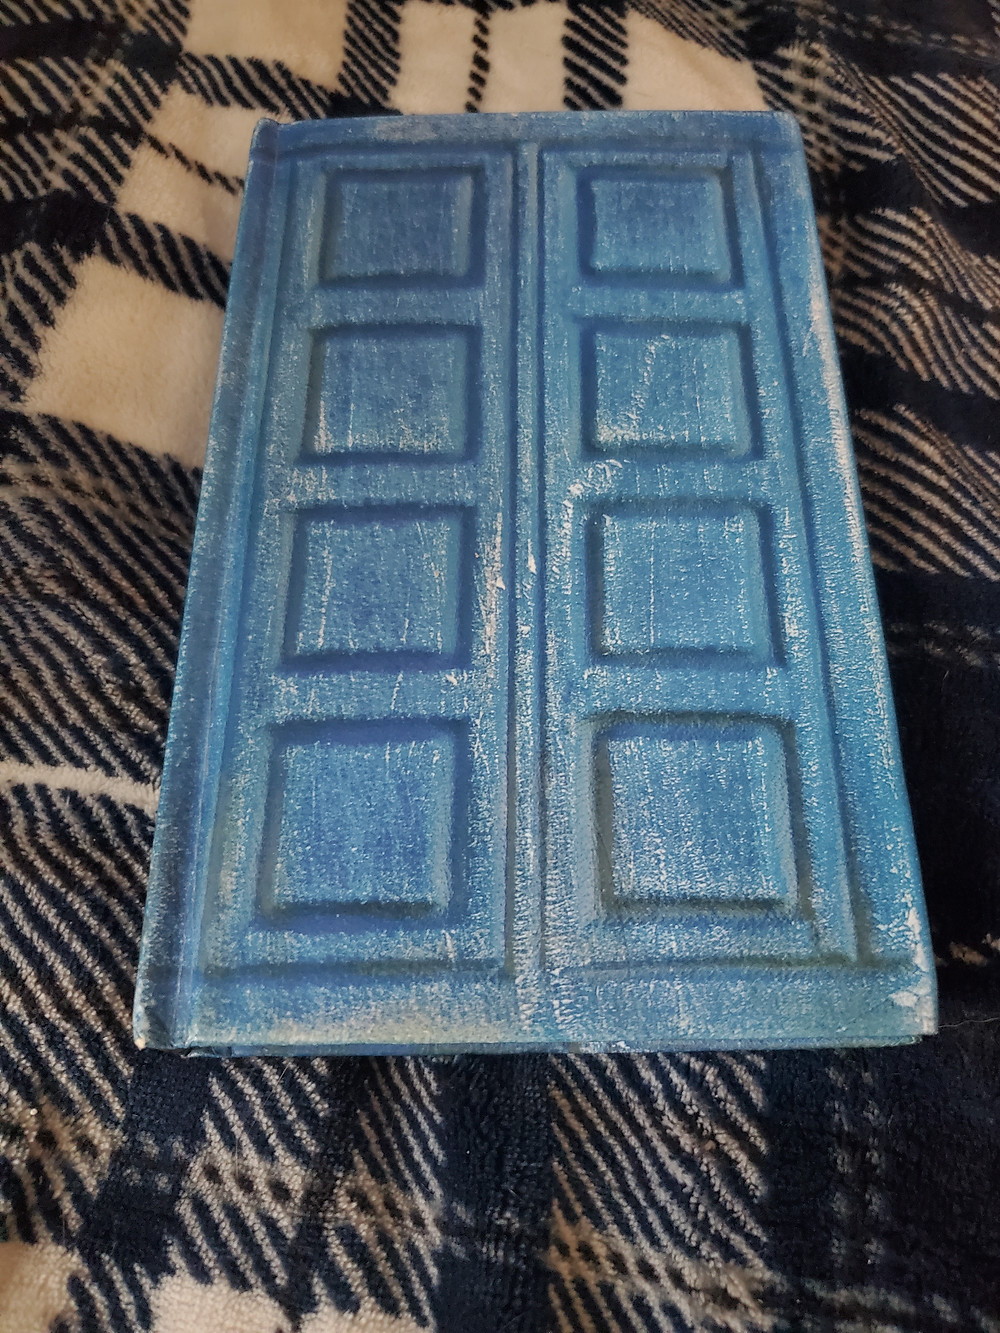 """My quarantine diary (""""Doctor Who"""" fans may recognize River Song's journal)"""